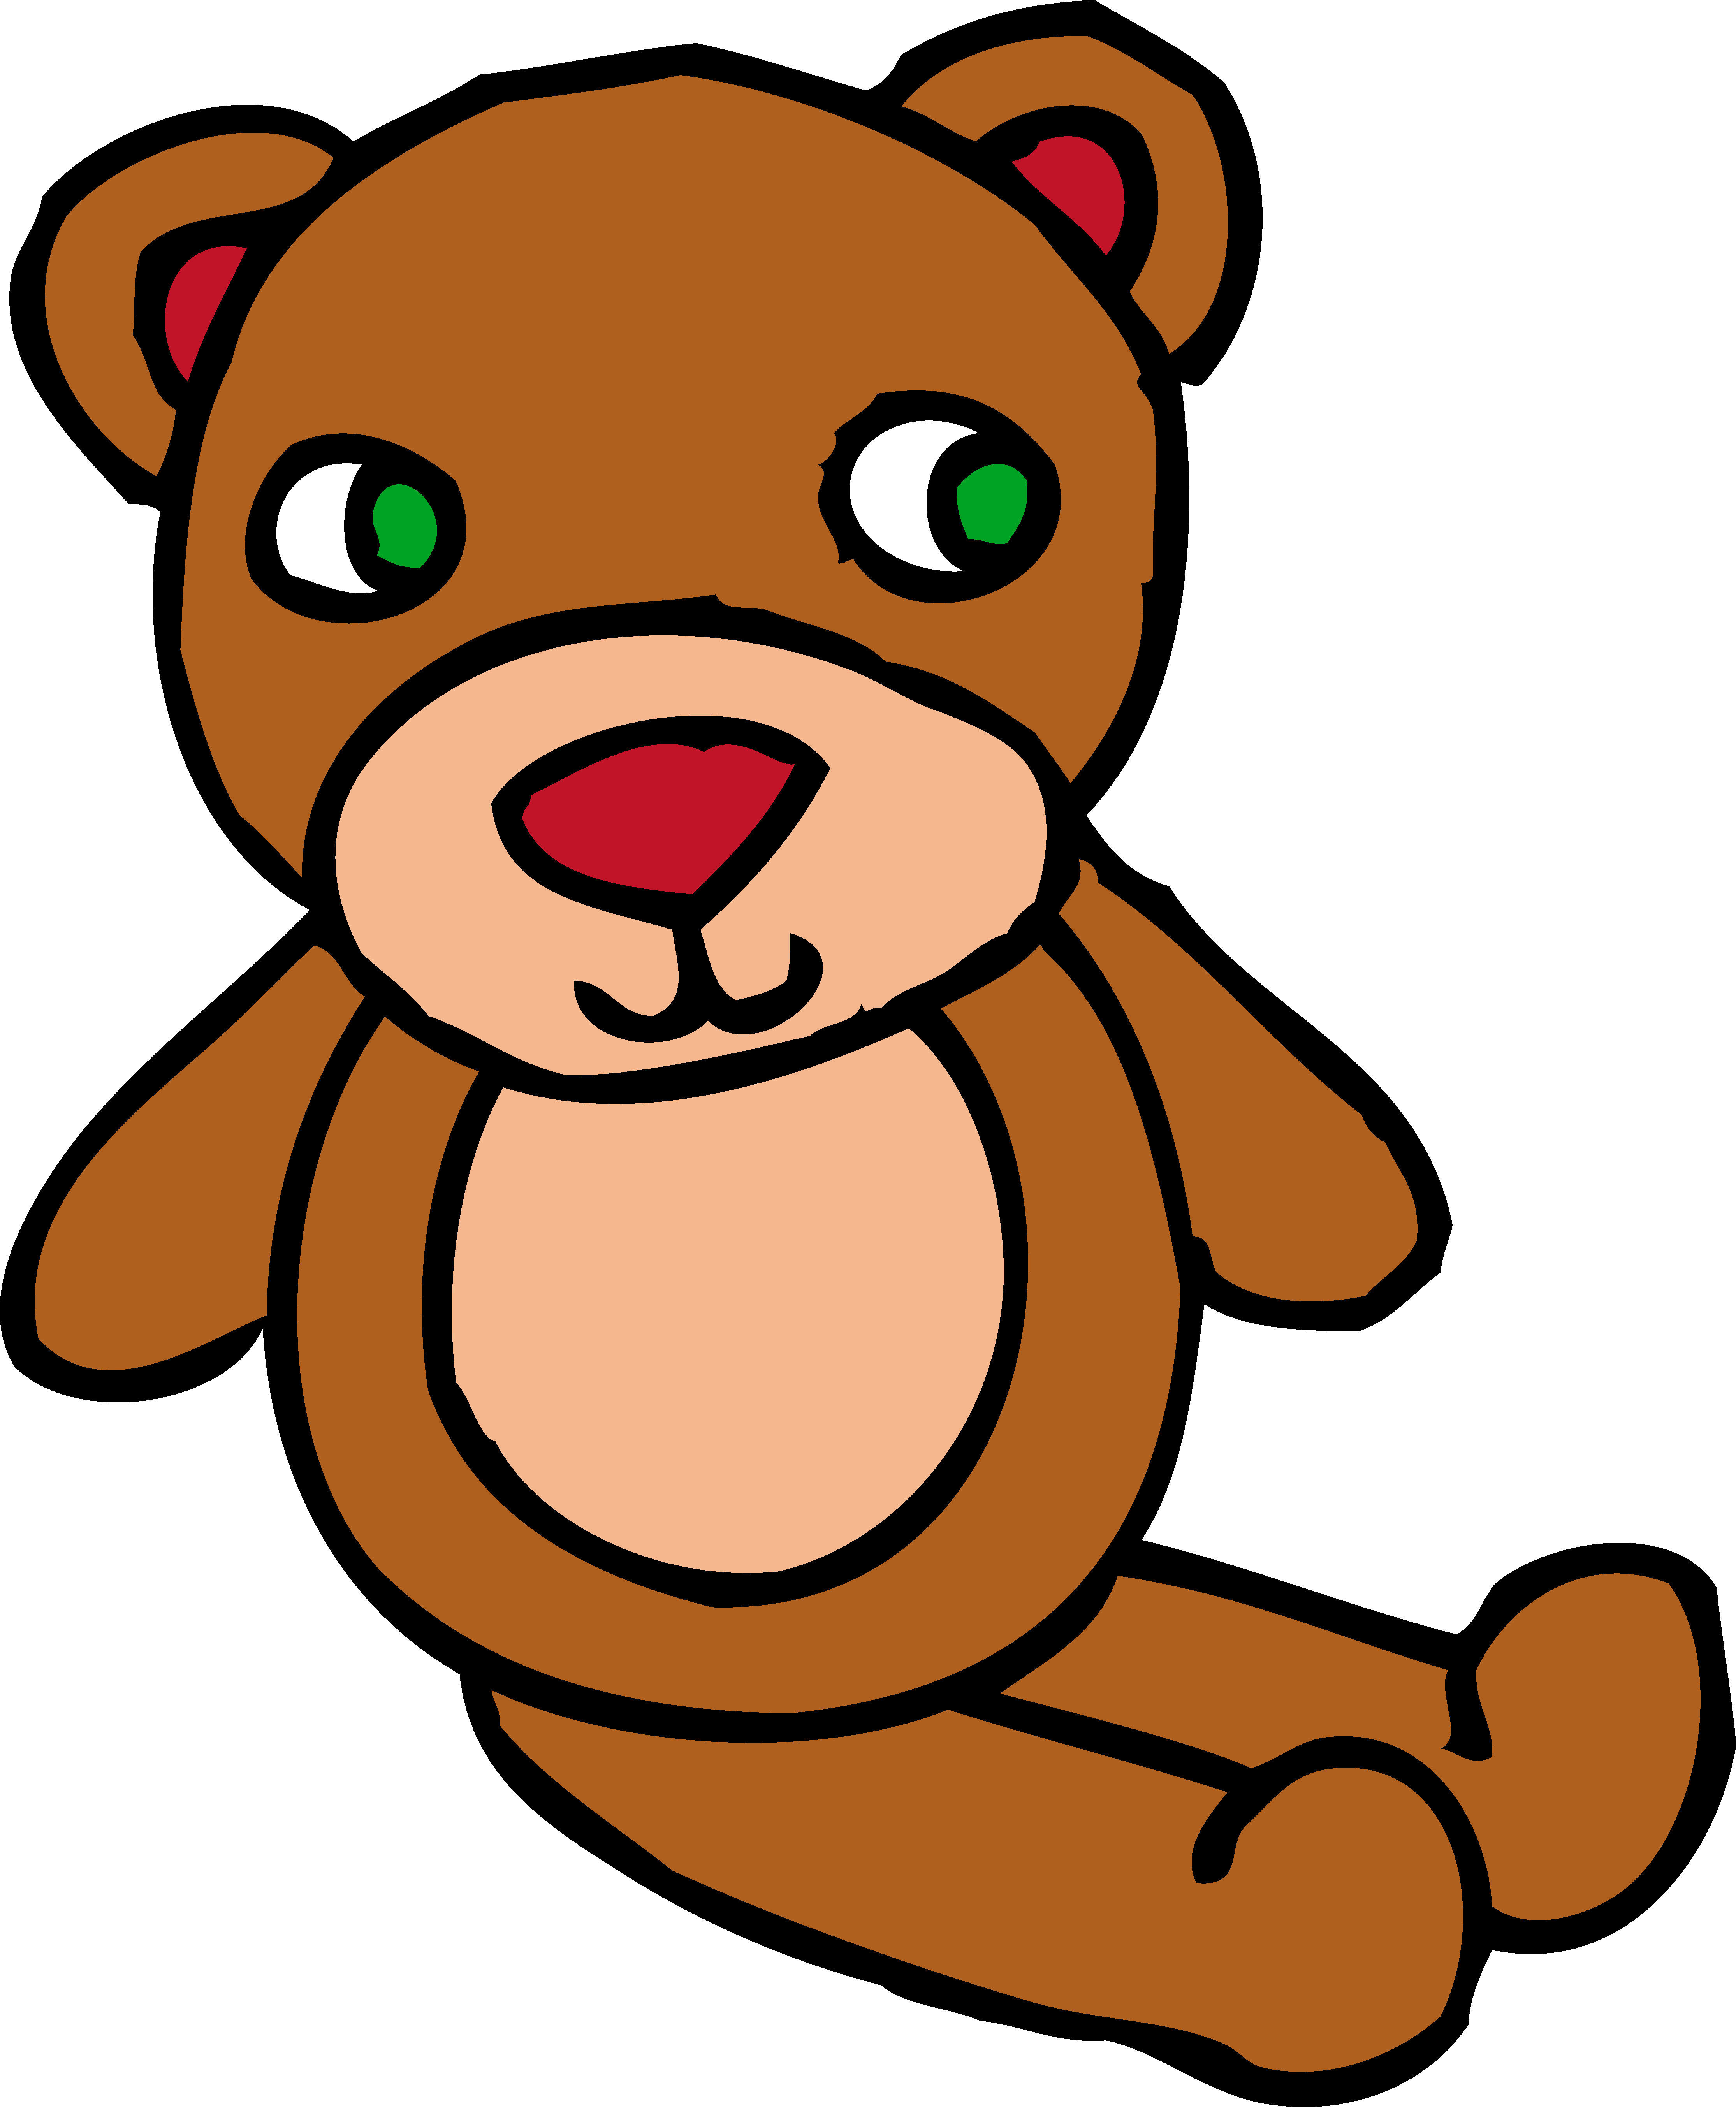 png transparent Teddy toy free clip. Cute brown bear clipart